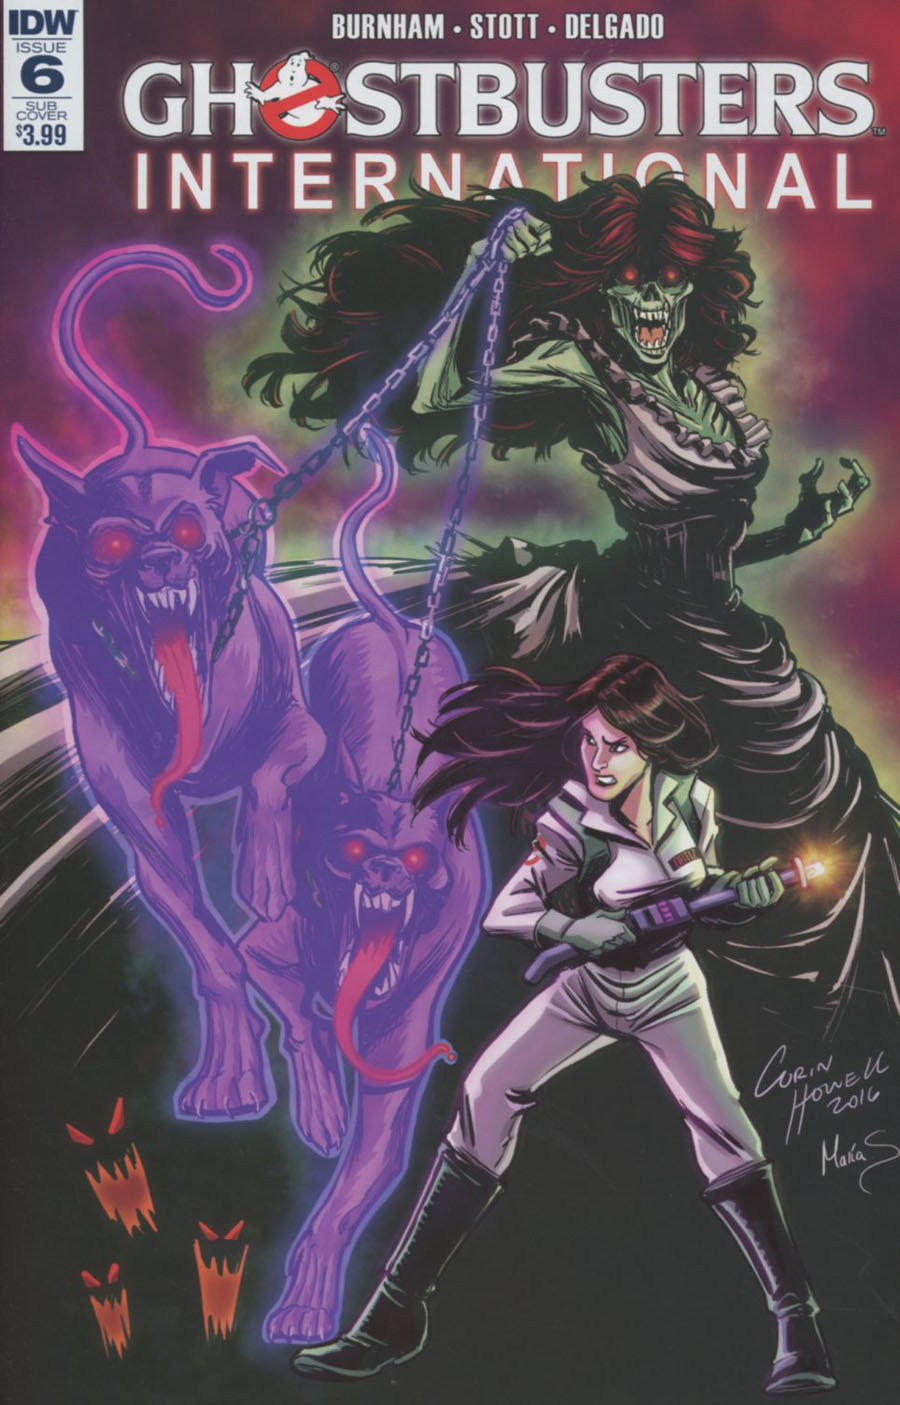 Ghostbusters International #6 Cover B Variant Corin Howell Subscription Cover